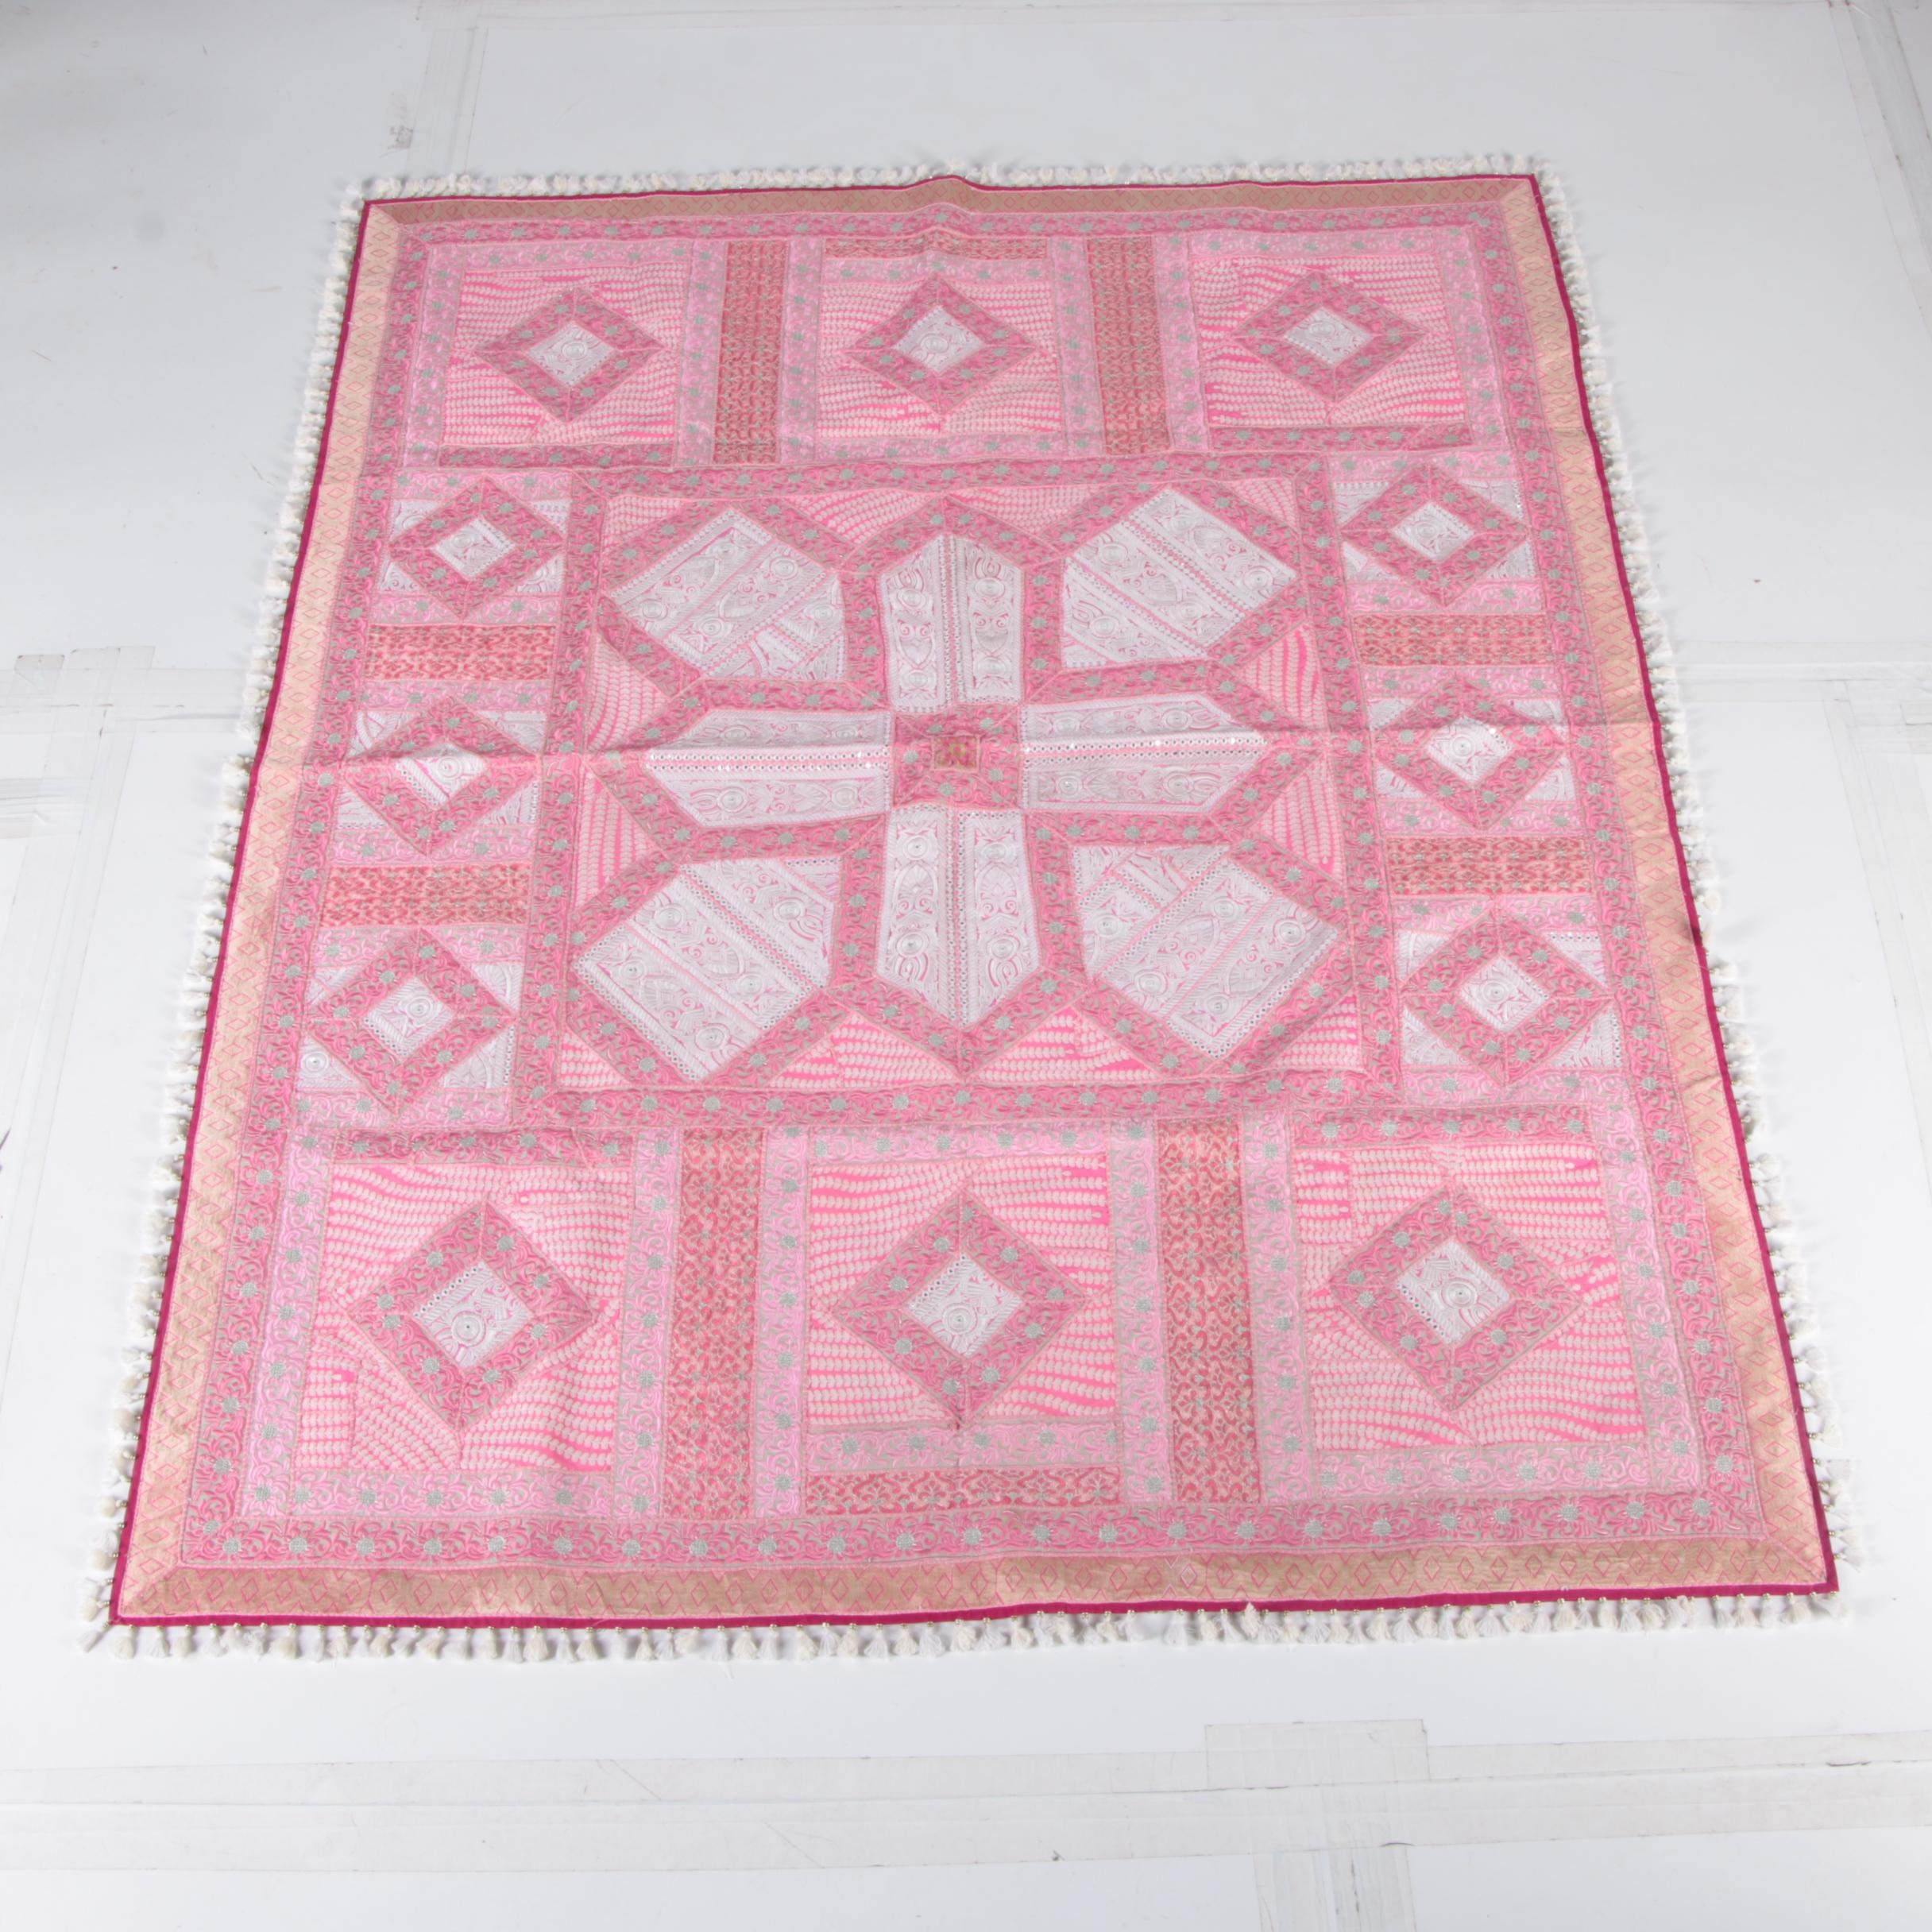 Vintage Embroidered South Asian Style Coverlet